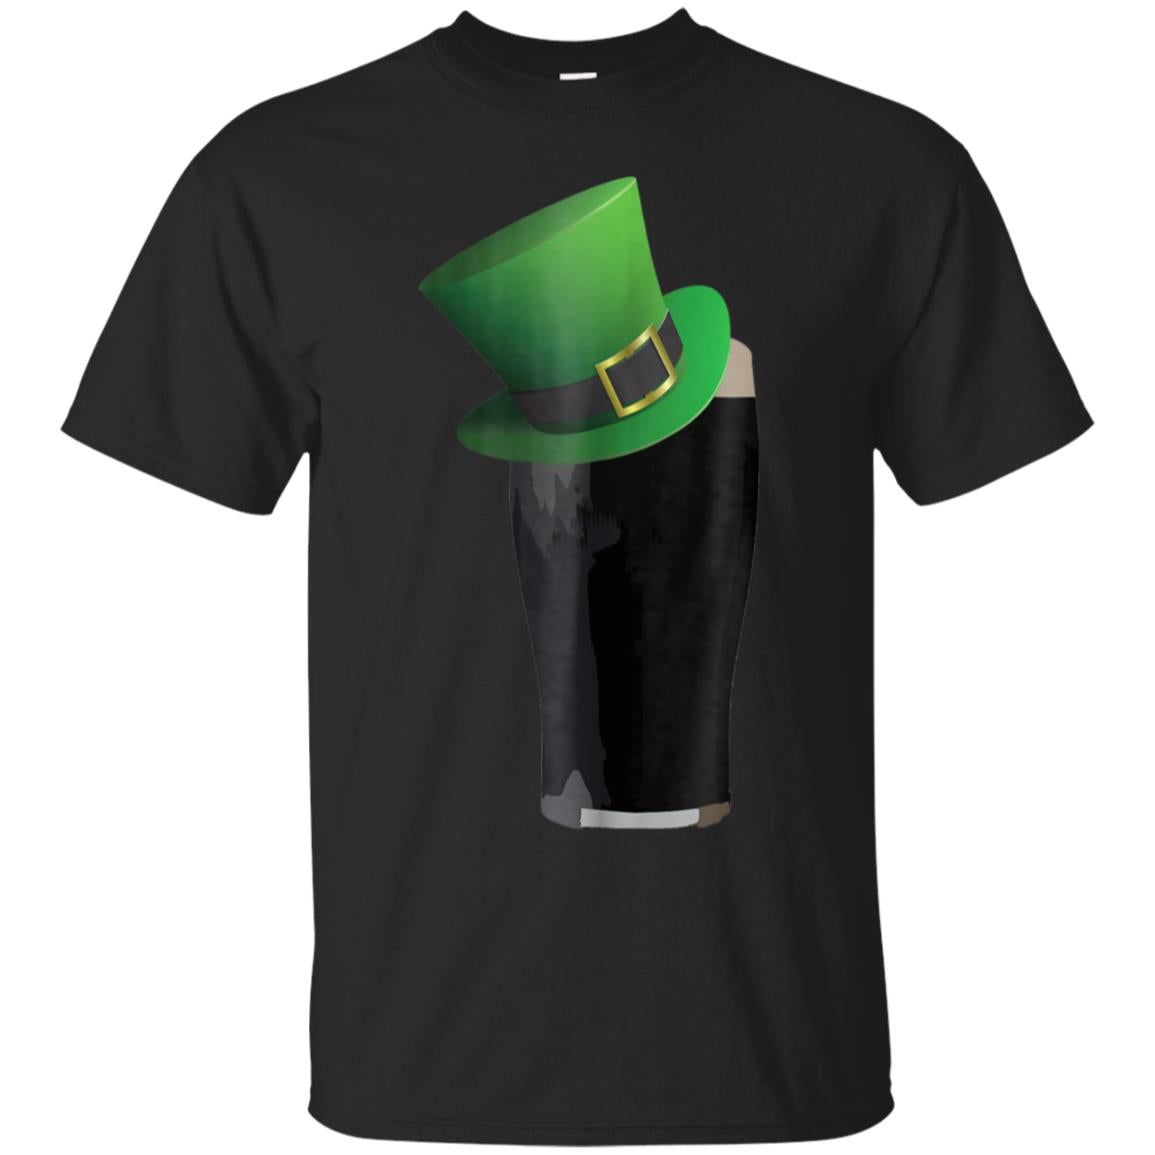 St Patricks Day Drinking Shirt - Best Irish Pint Tee 99promocode